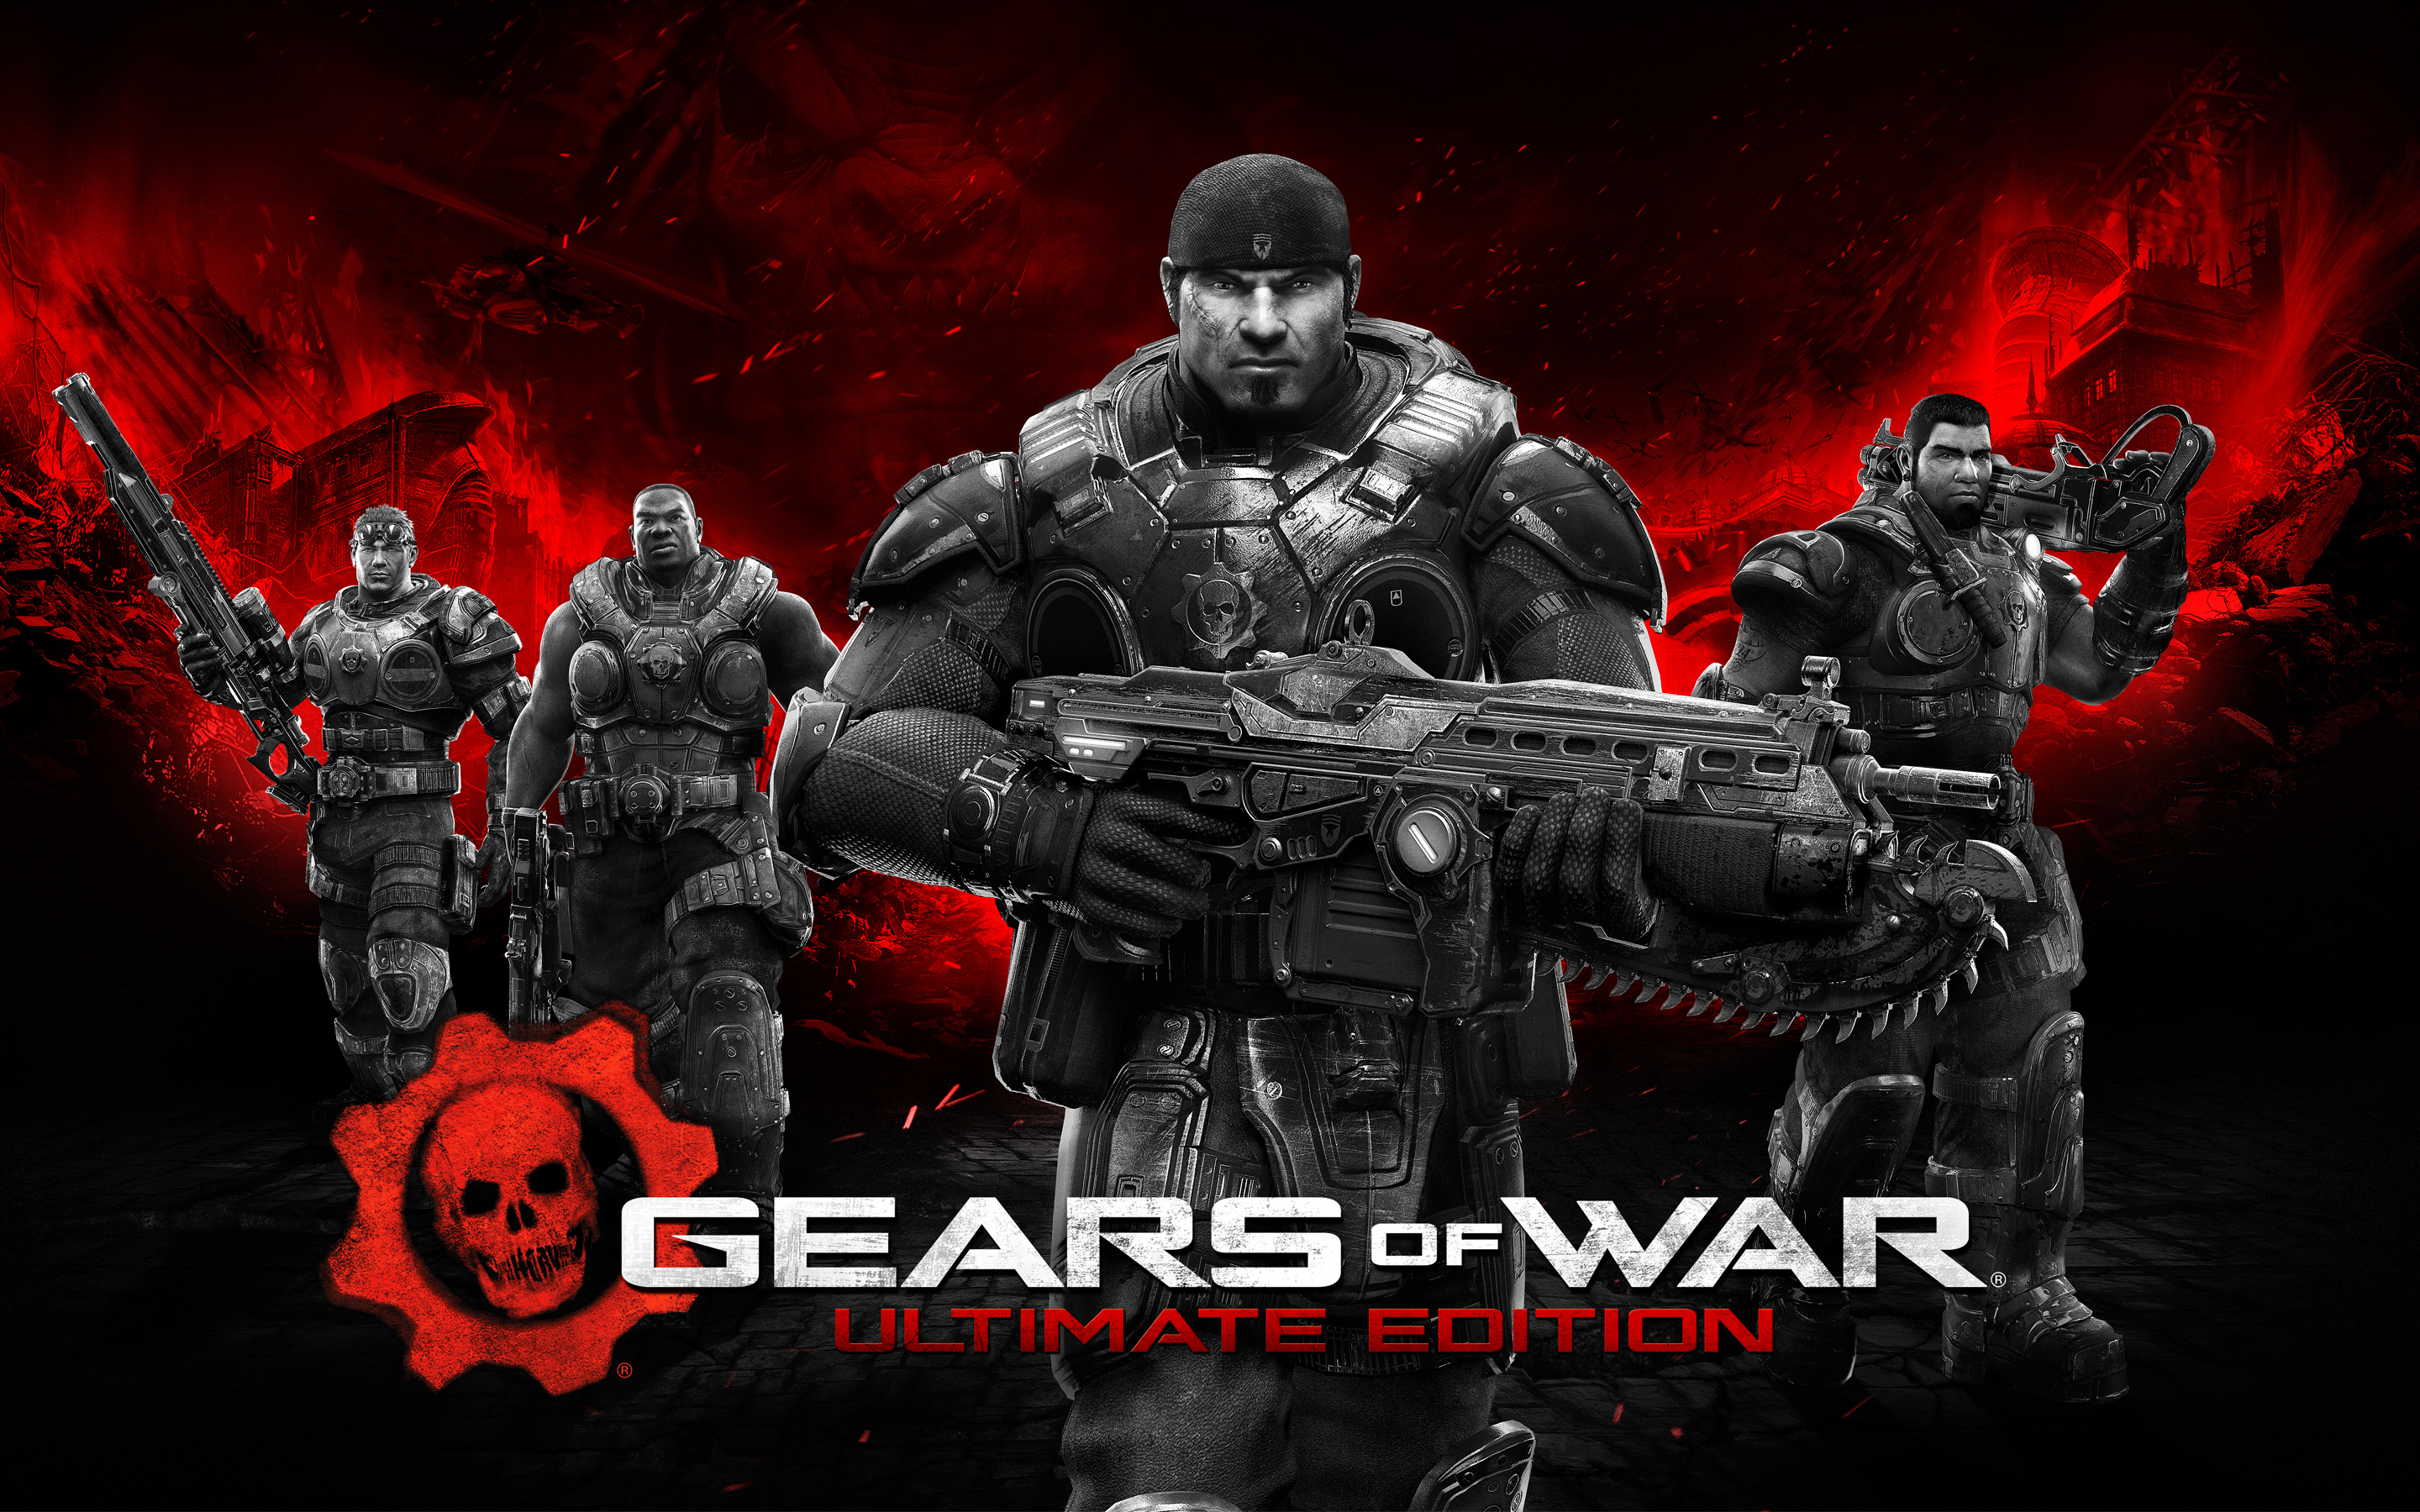 Gears of War Ultimate Edition Wallpapers HD Wallpapers 2880x1800